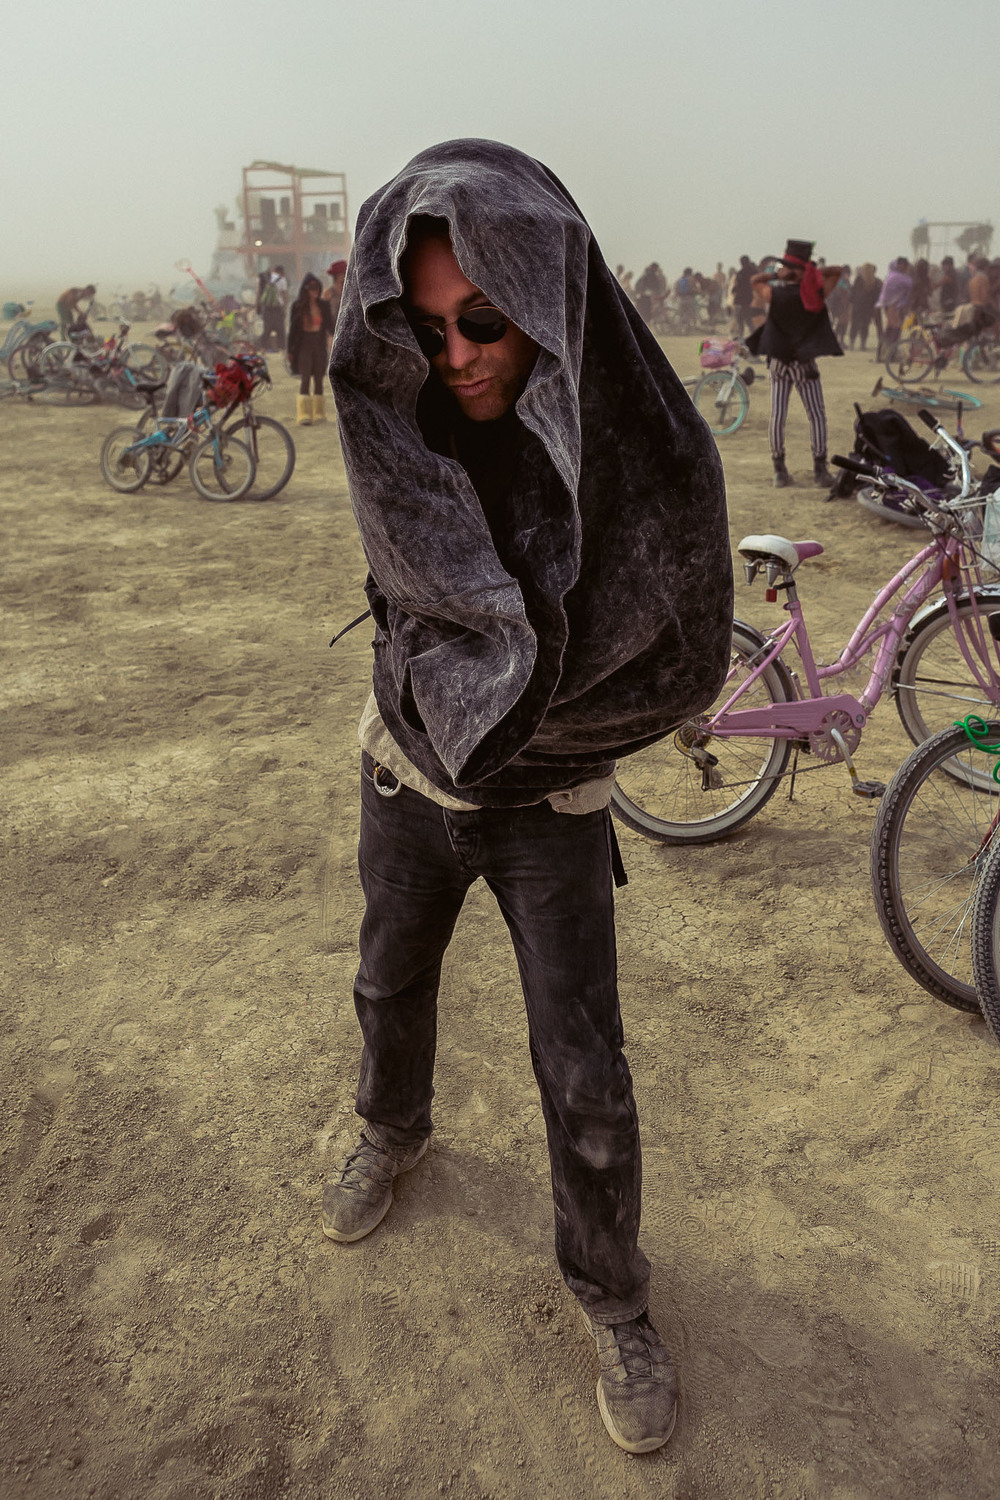 Burning_Man_2014_by_Cai_Griffin-83.jpg